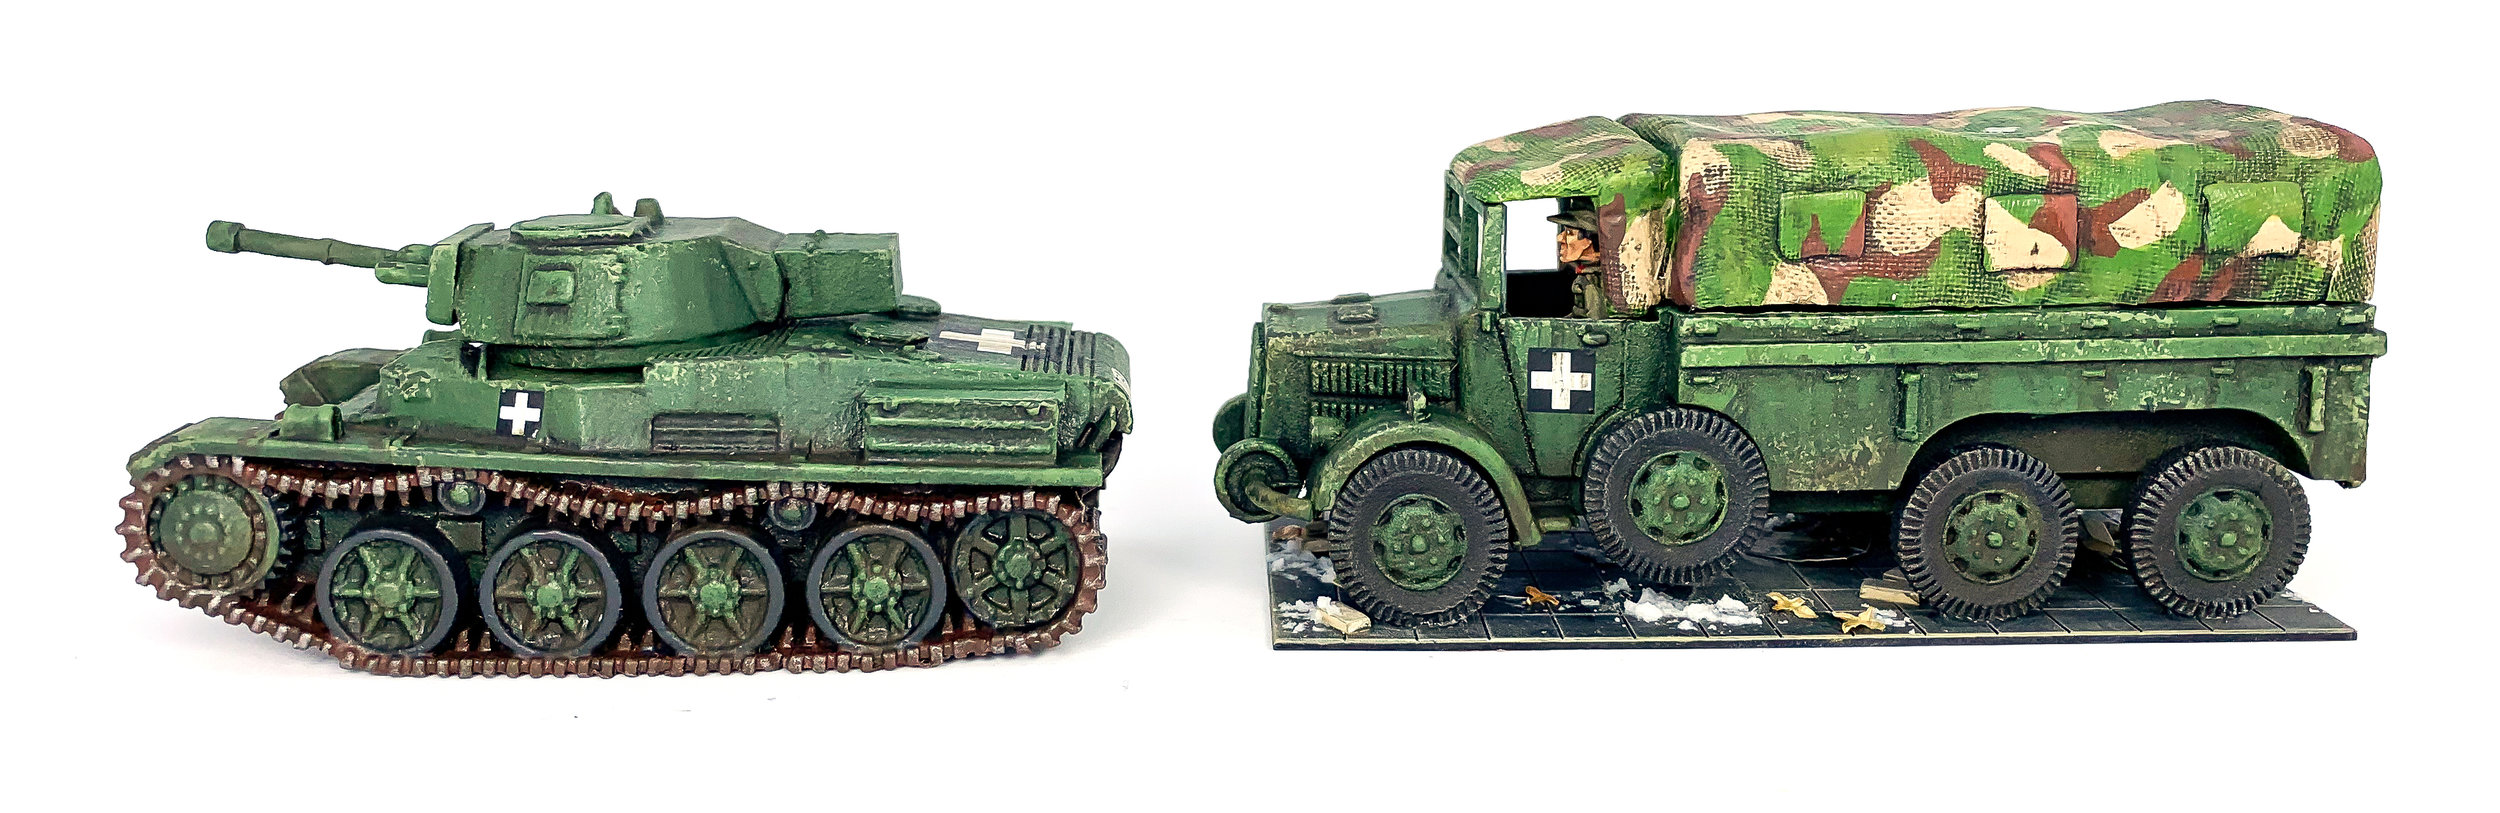 Hungarian vehicles_finished_-2.jpg